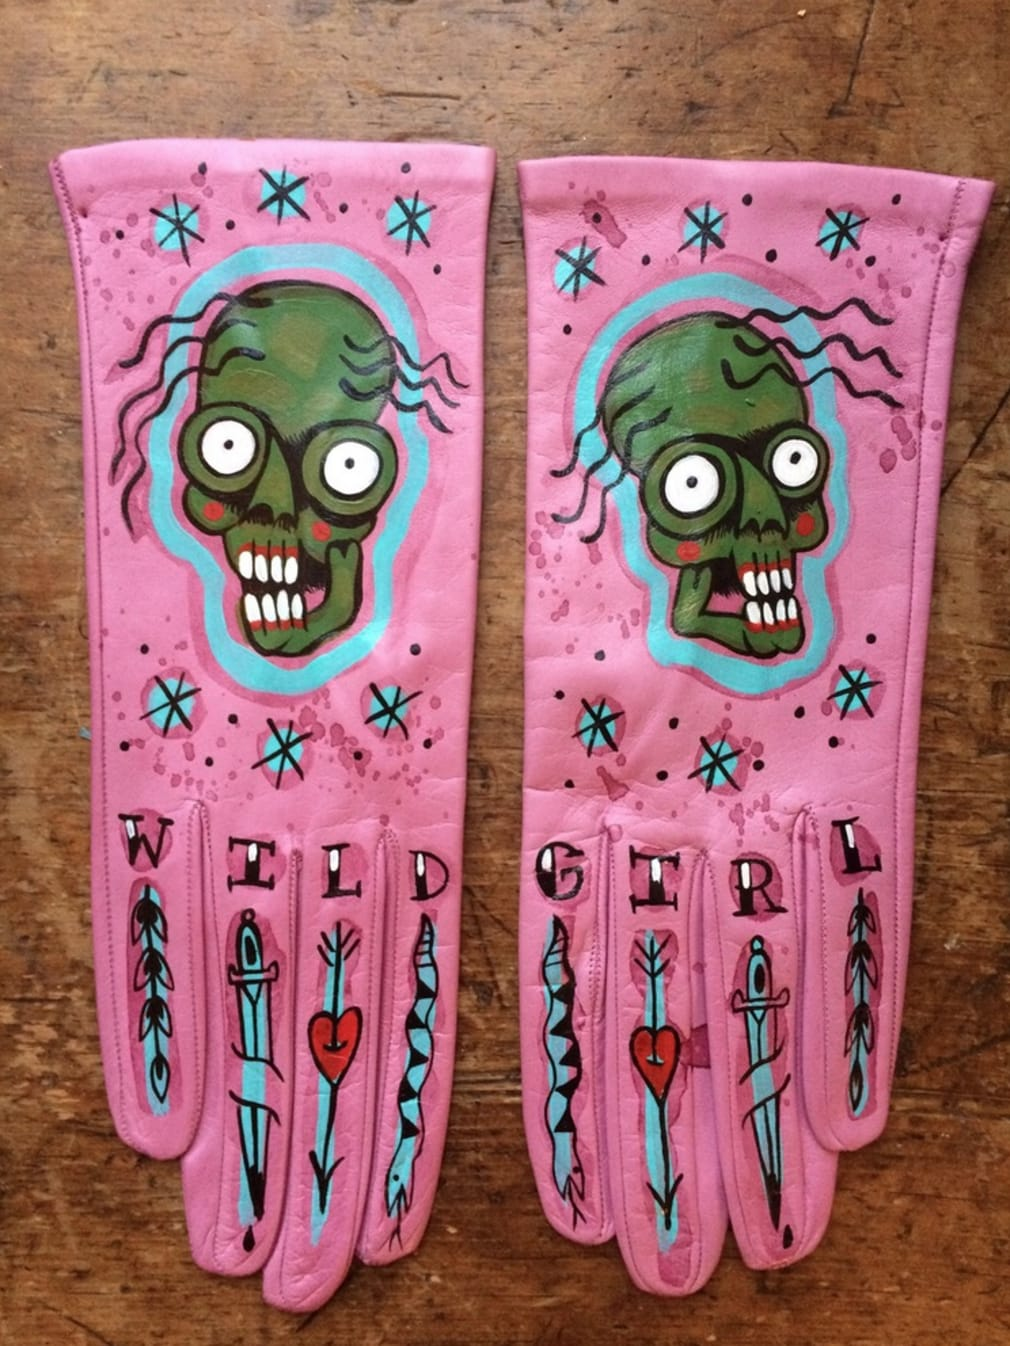 Pink hand-painted wearable gloves